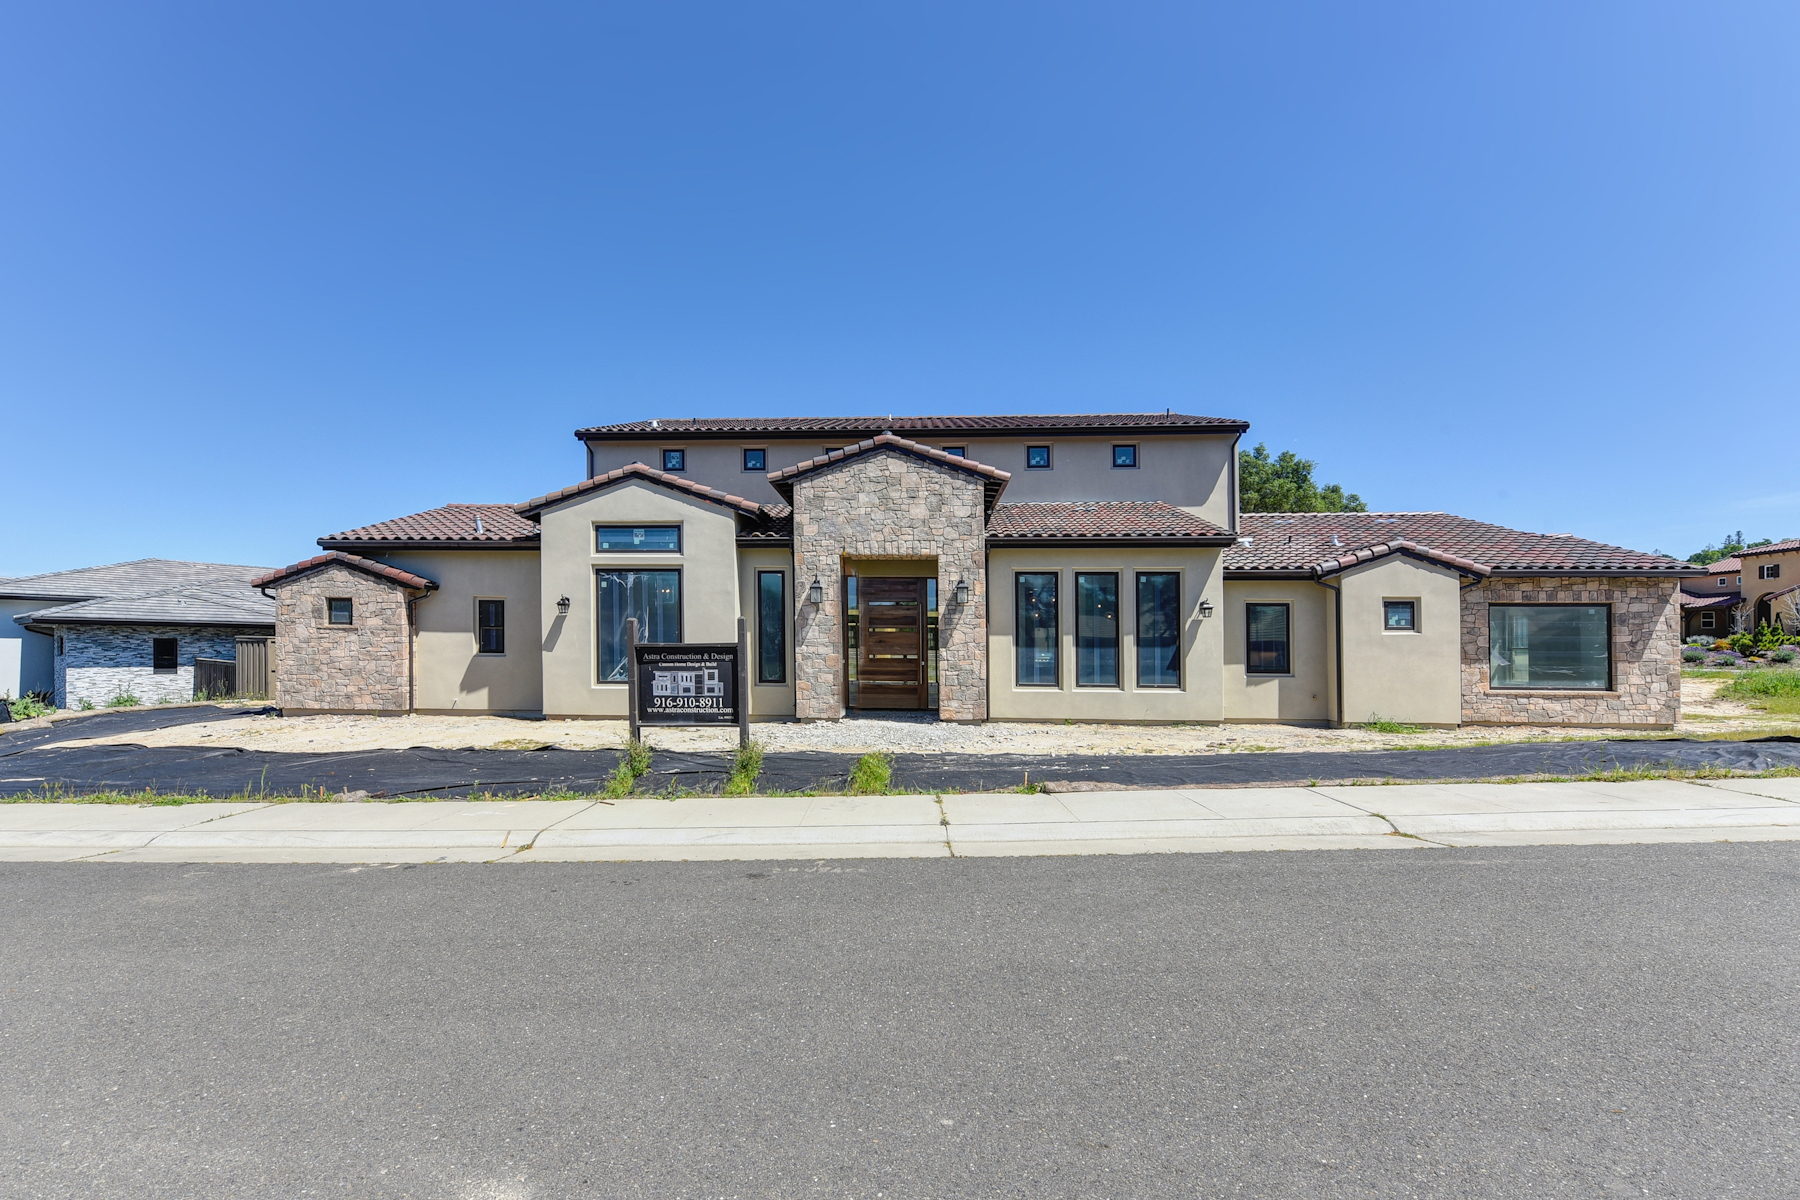 Single Family Home for Active at 8117 Woodland Grove Pl, Granite Bay, CA 95746 8117 Woodland Grove Pl Granite Bay, California 95746 United States